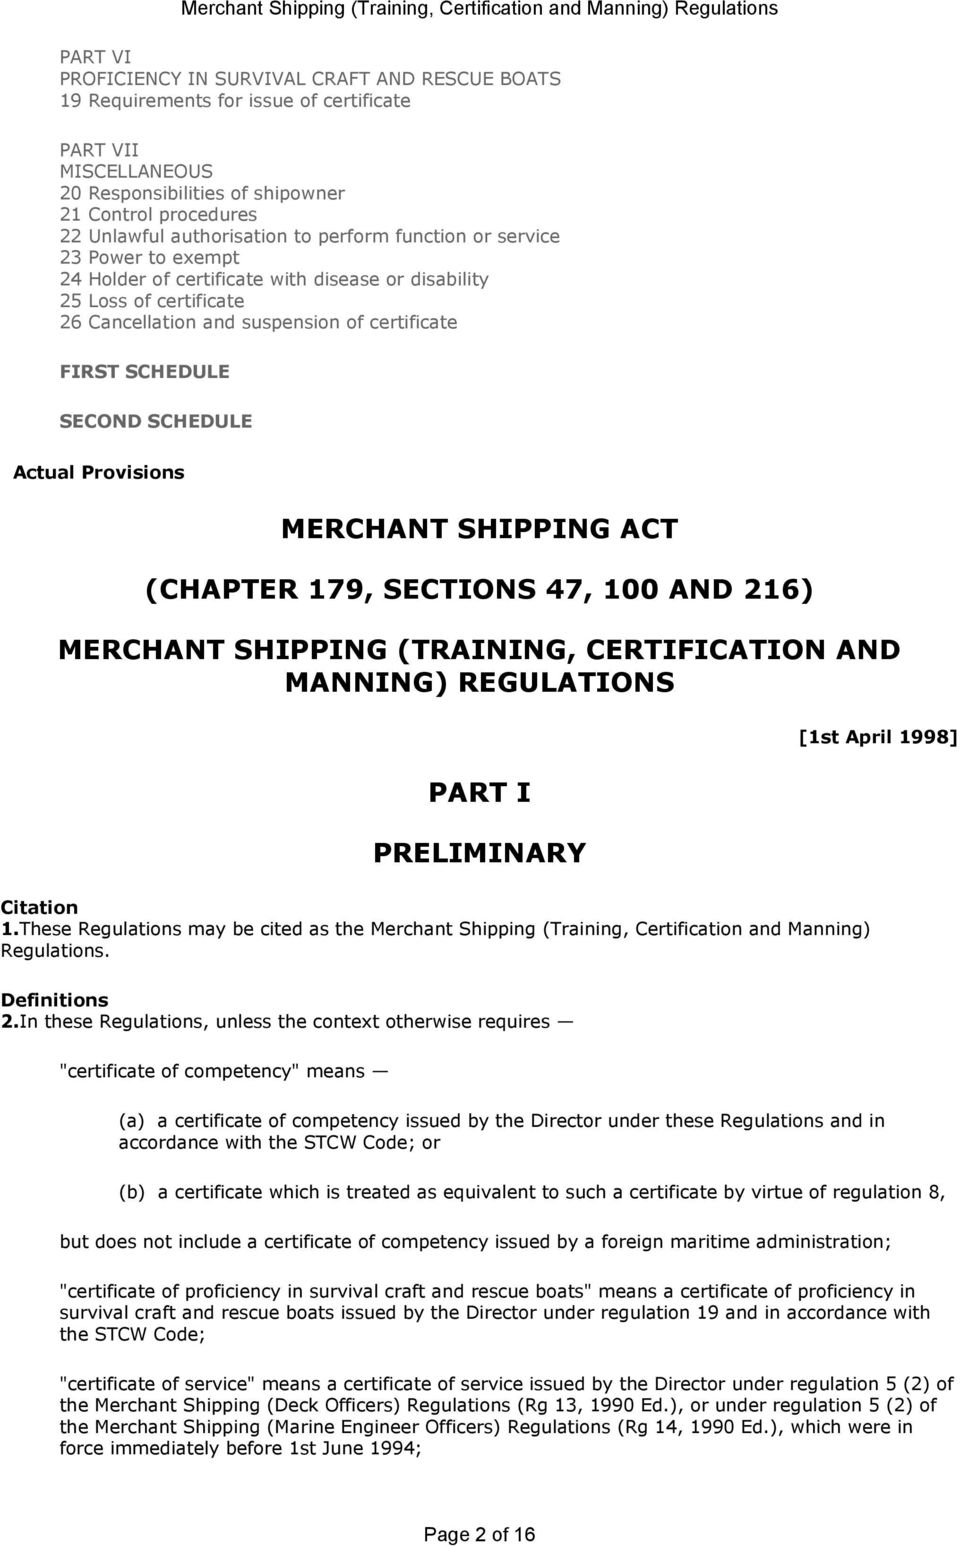 SCHEDULE Actual Provisions MERCHANT SHIPPING ACT (CHAPTER 179, SECTIONS 47, 100 AND 216) MERCHANT SHIPPING (TRAINING, CERTIFICATION AND MANNING) REGULATIONS PART I PRELIMINARY Citation 1.